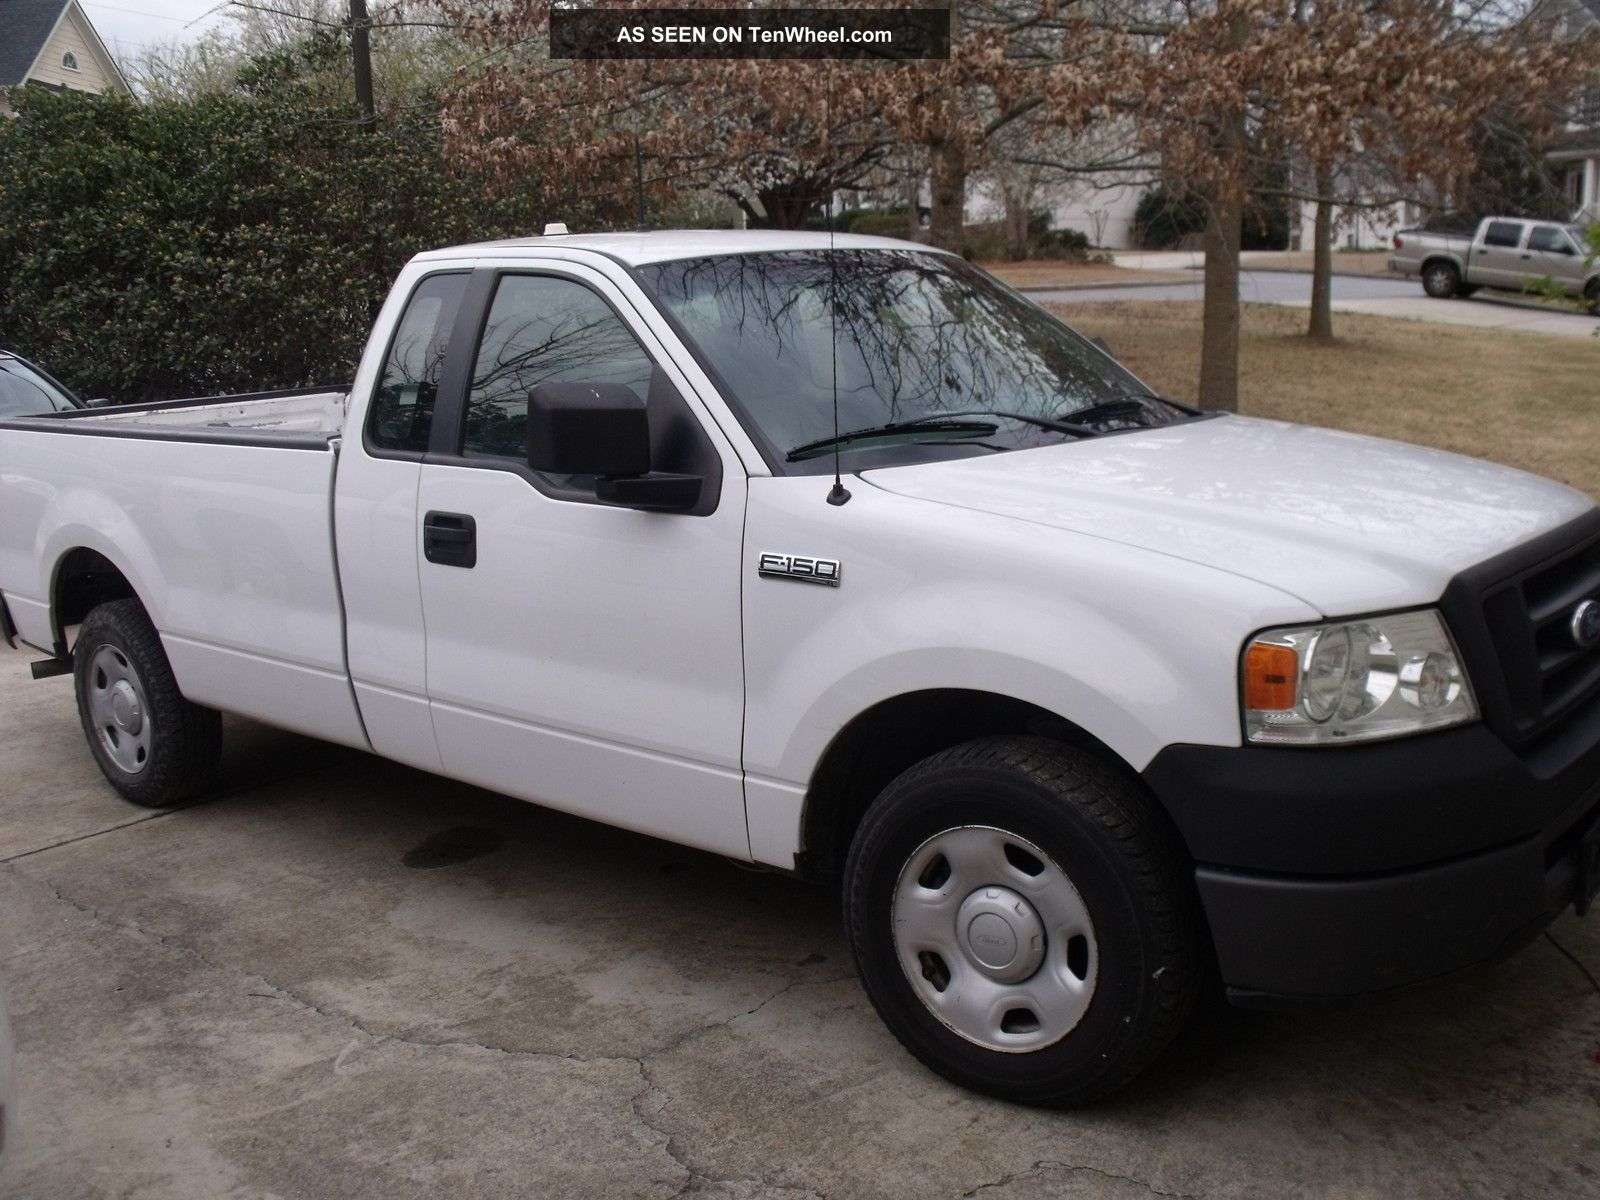 Tundra Regular Cab Short Bed 5.7 For Sale >> 2013 Ford F150 Xl Regular Cab And Bed | Autos Post